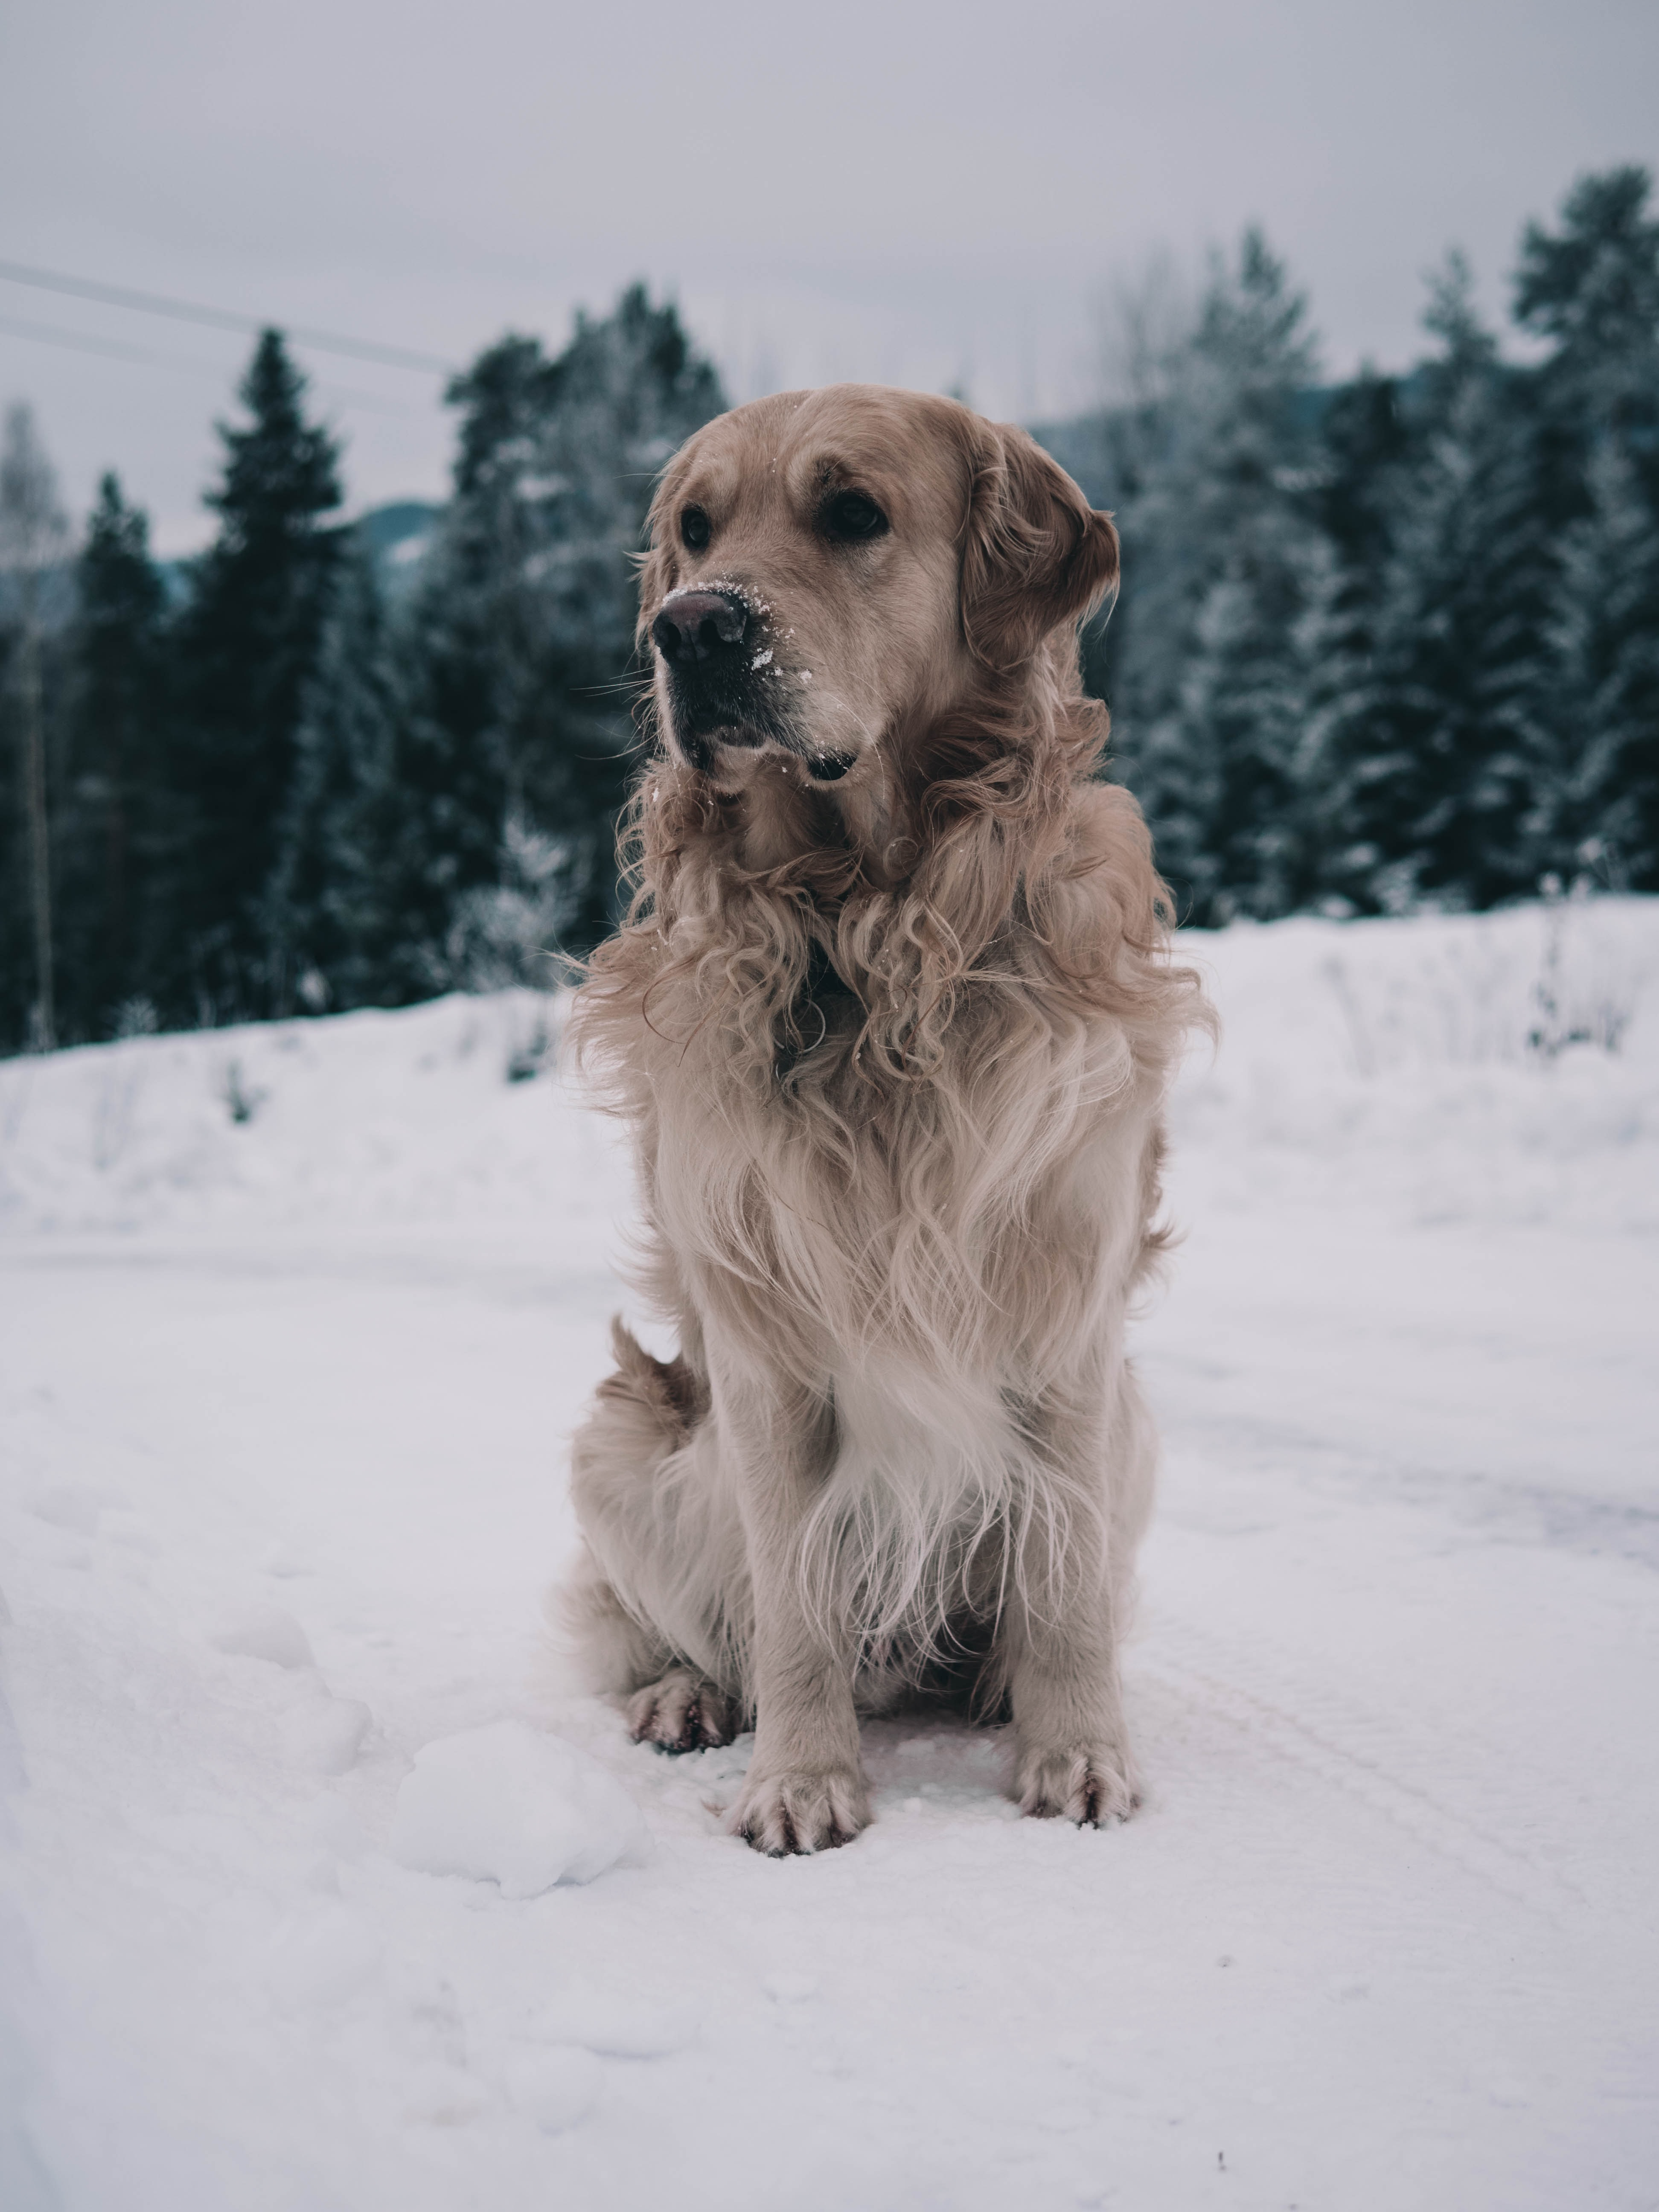 brown dog standing on snow near green trees